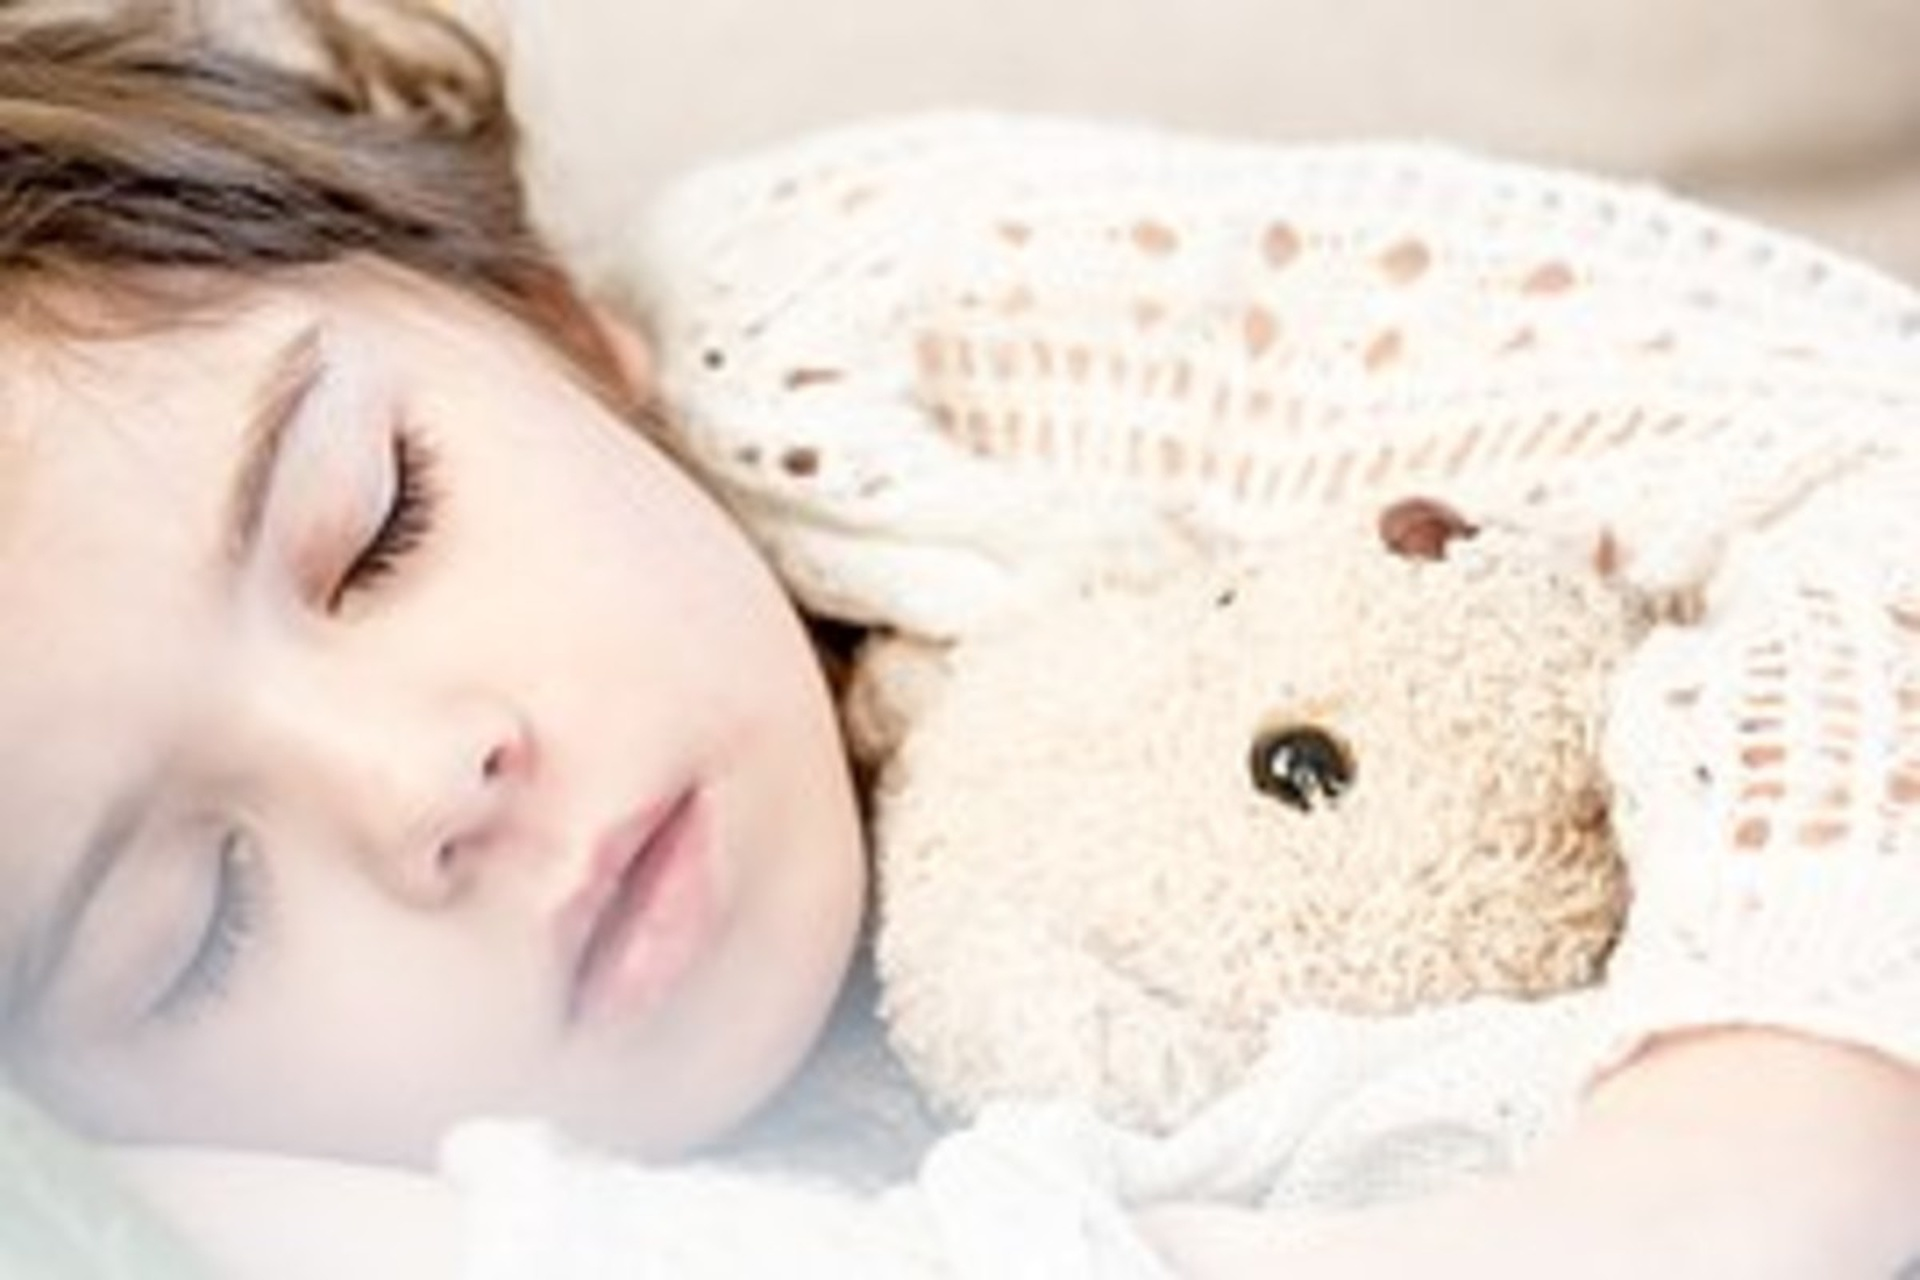 The study reinforces the importance of establishing a bedtime routine.